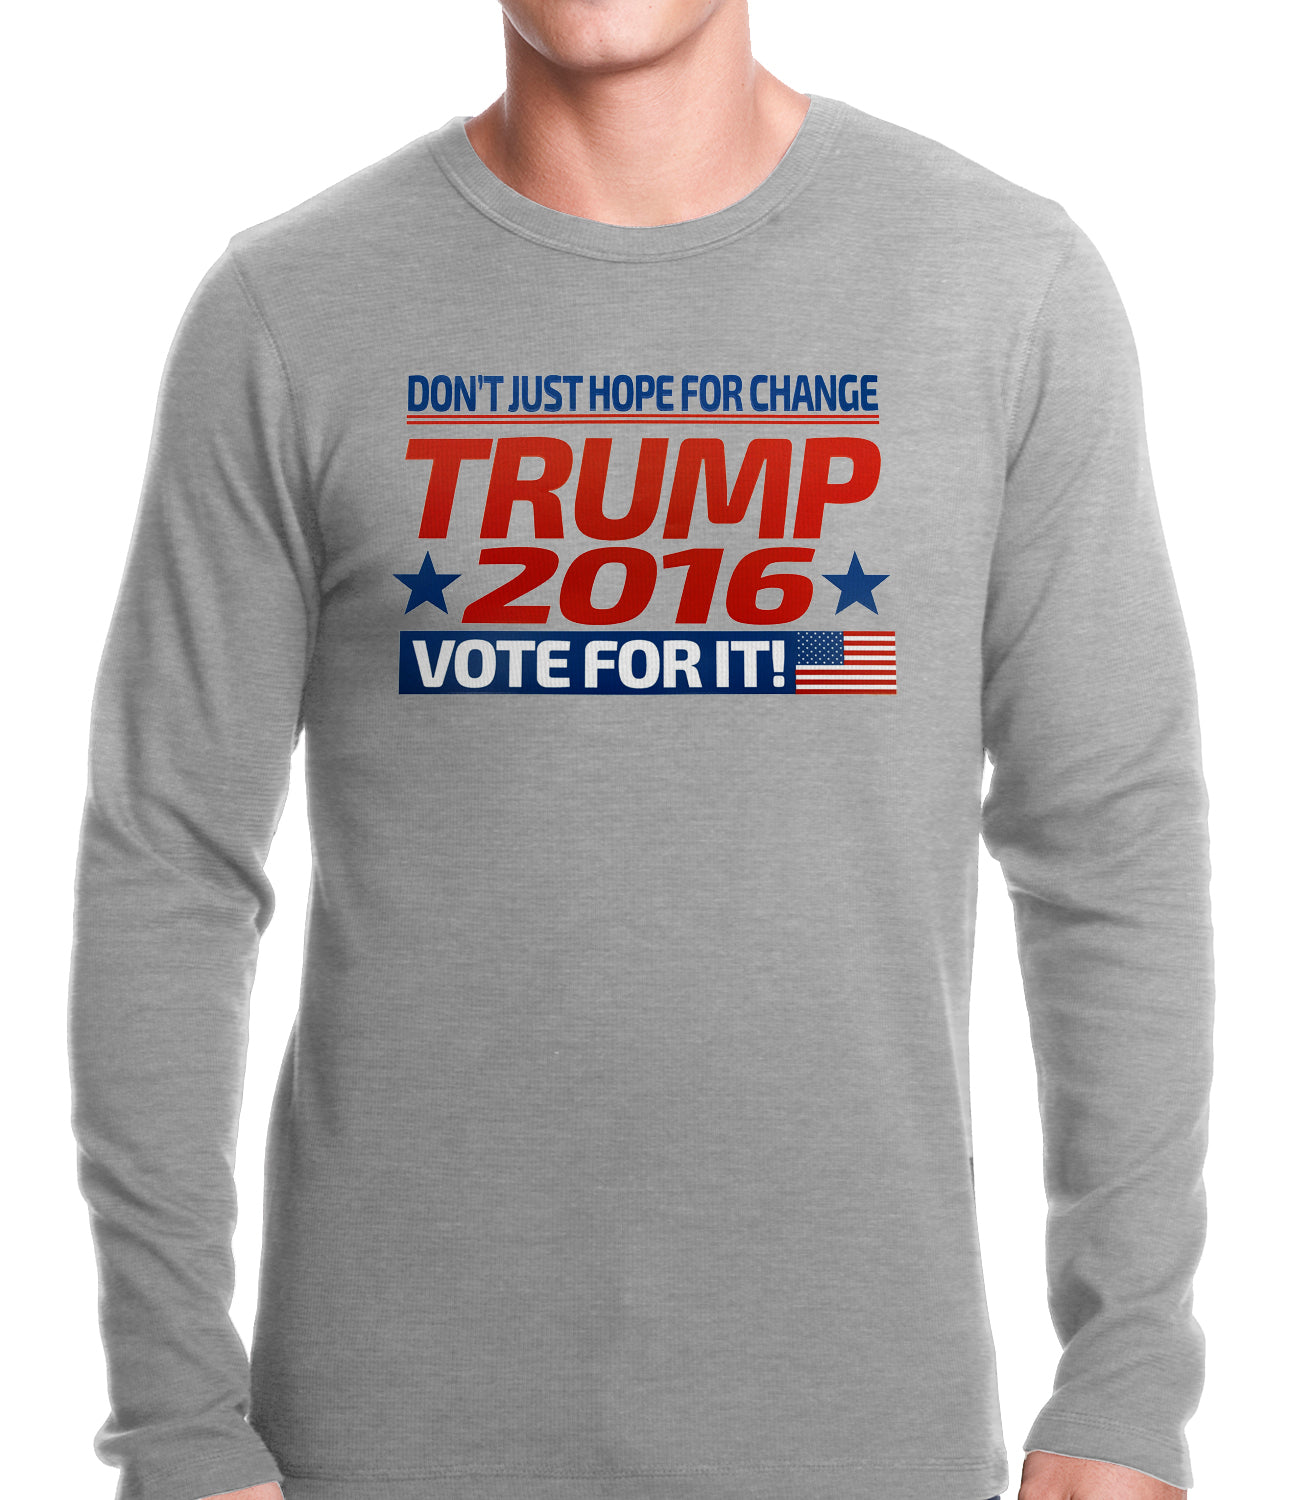 Don't Just Hope For Change, Vote For It - Trump 2016 Thermal Shirt